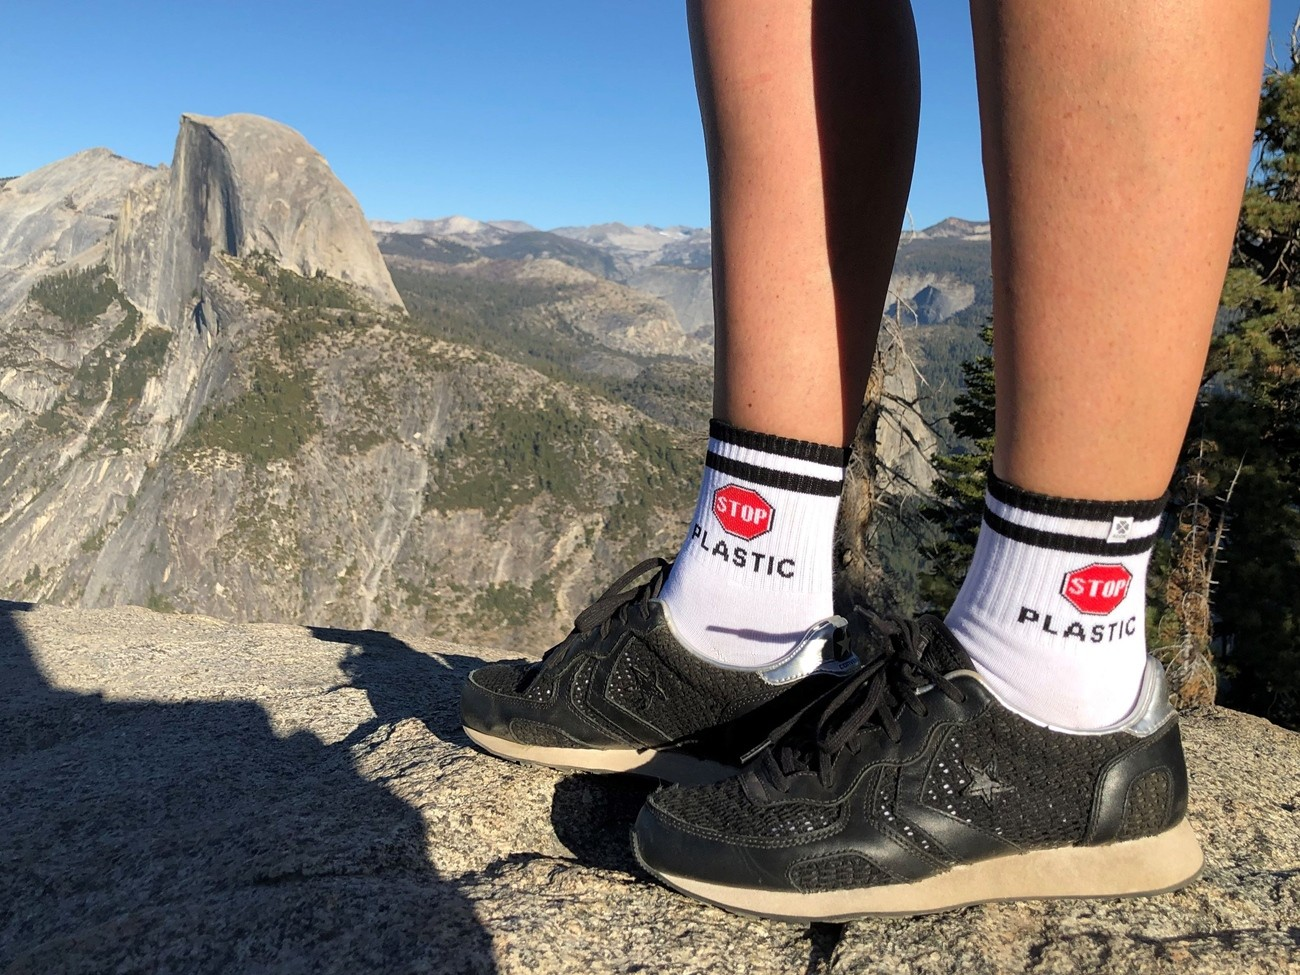 4lck fashion socks Stop Plastic, on the view of Half Dome in Yosemite Park